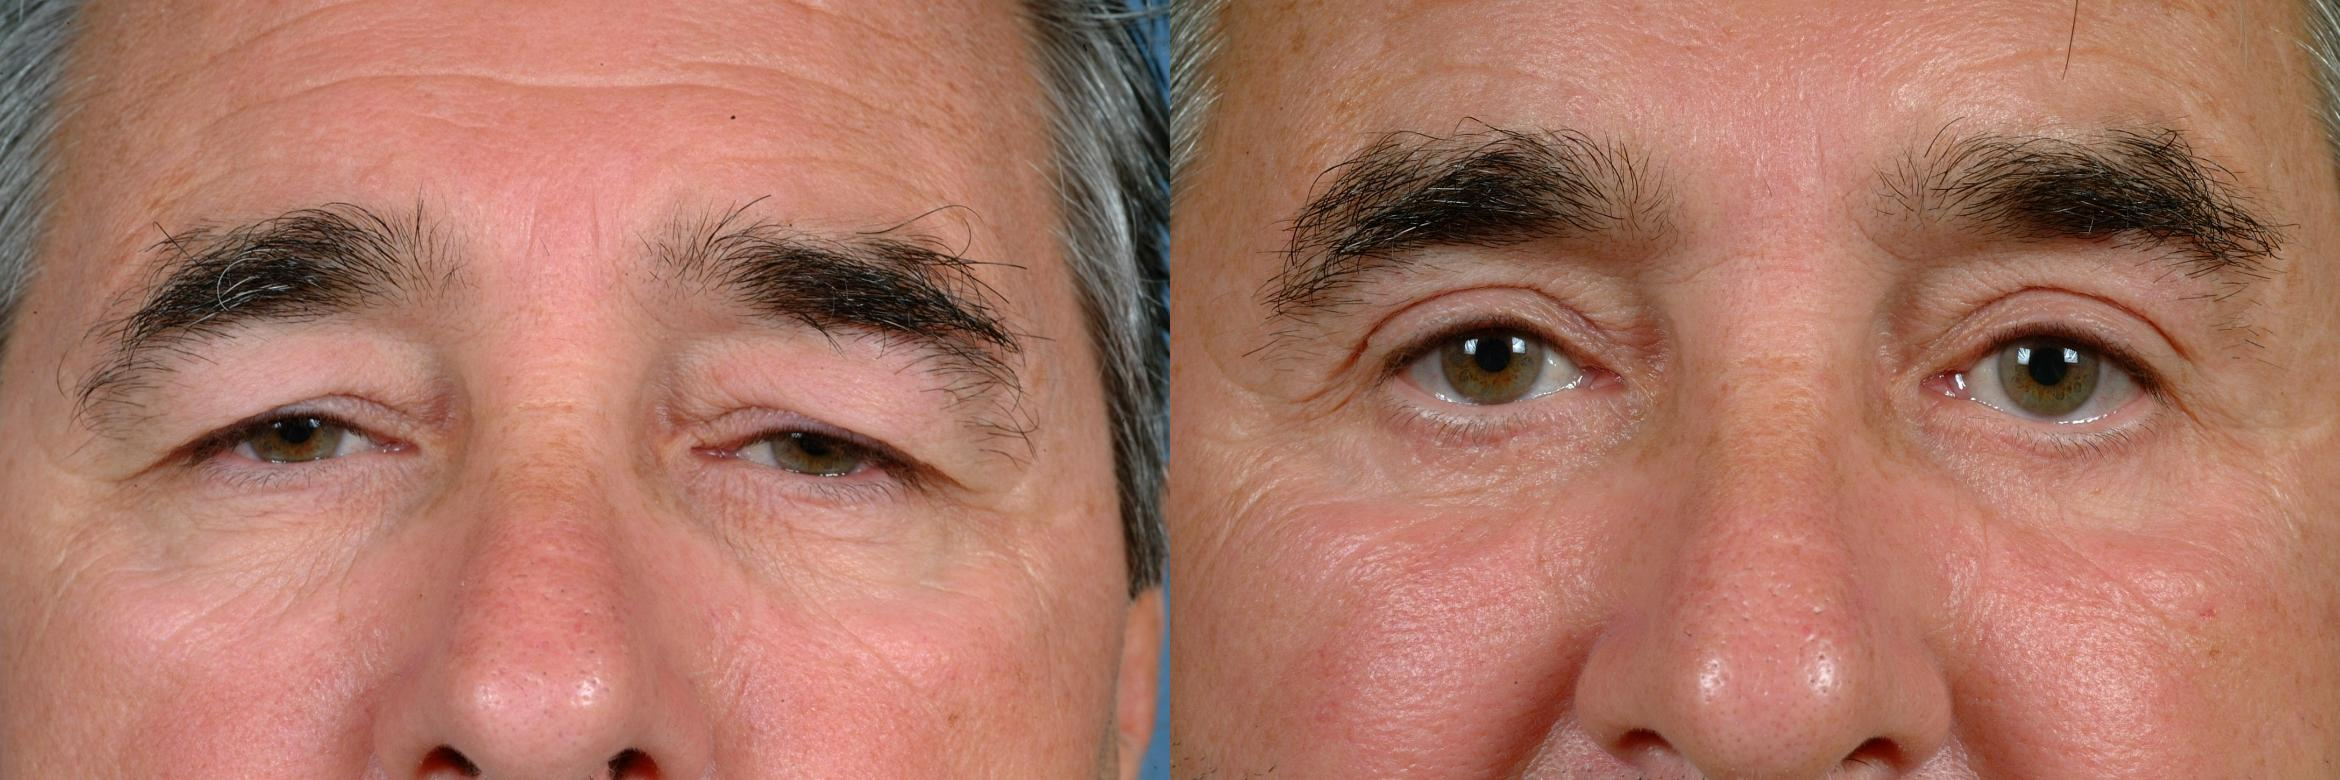 Eyelid Surgery Case 720 Before & After Front | Louisville, KY | CaloAesthetics® Plastic Surgery Center